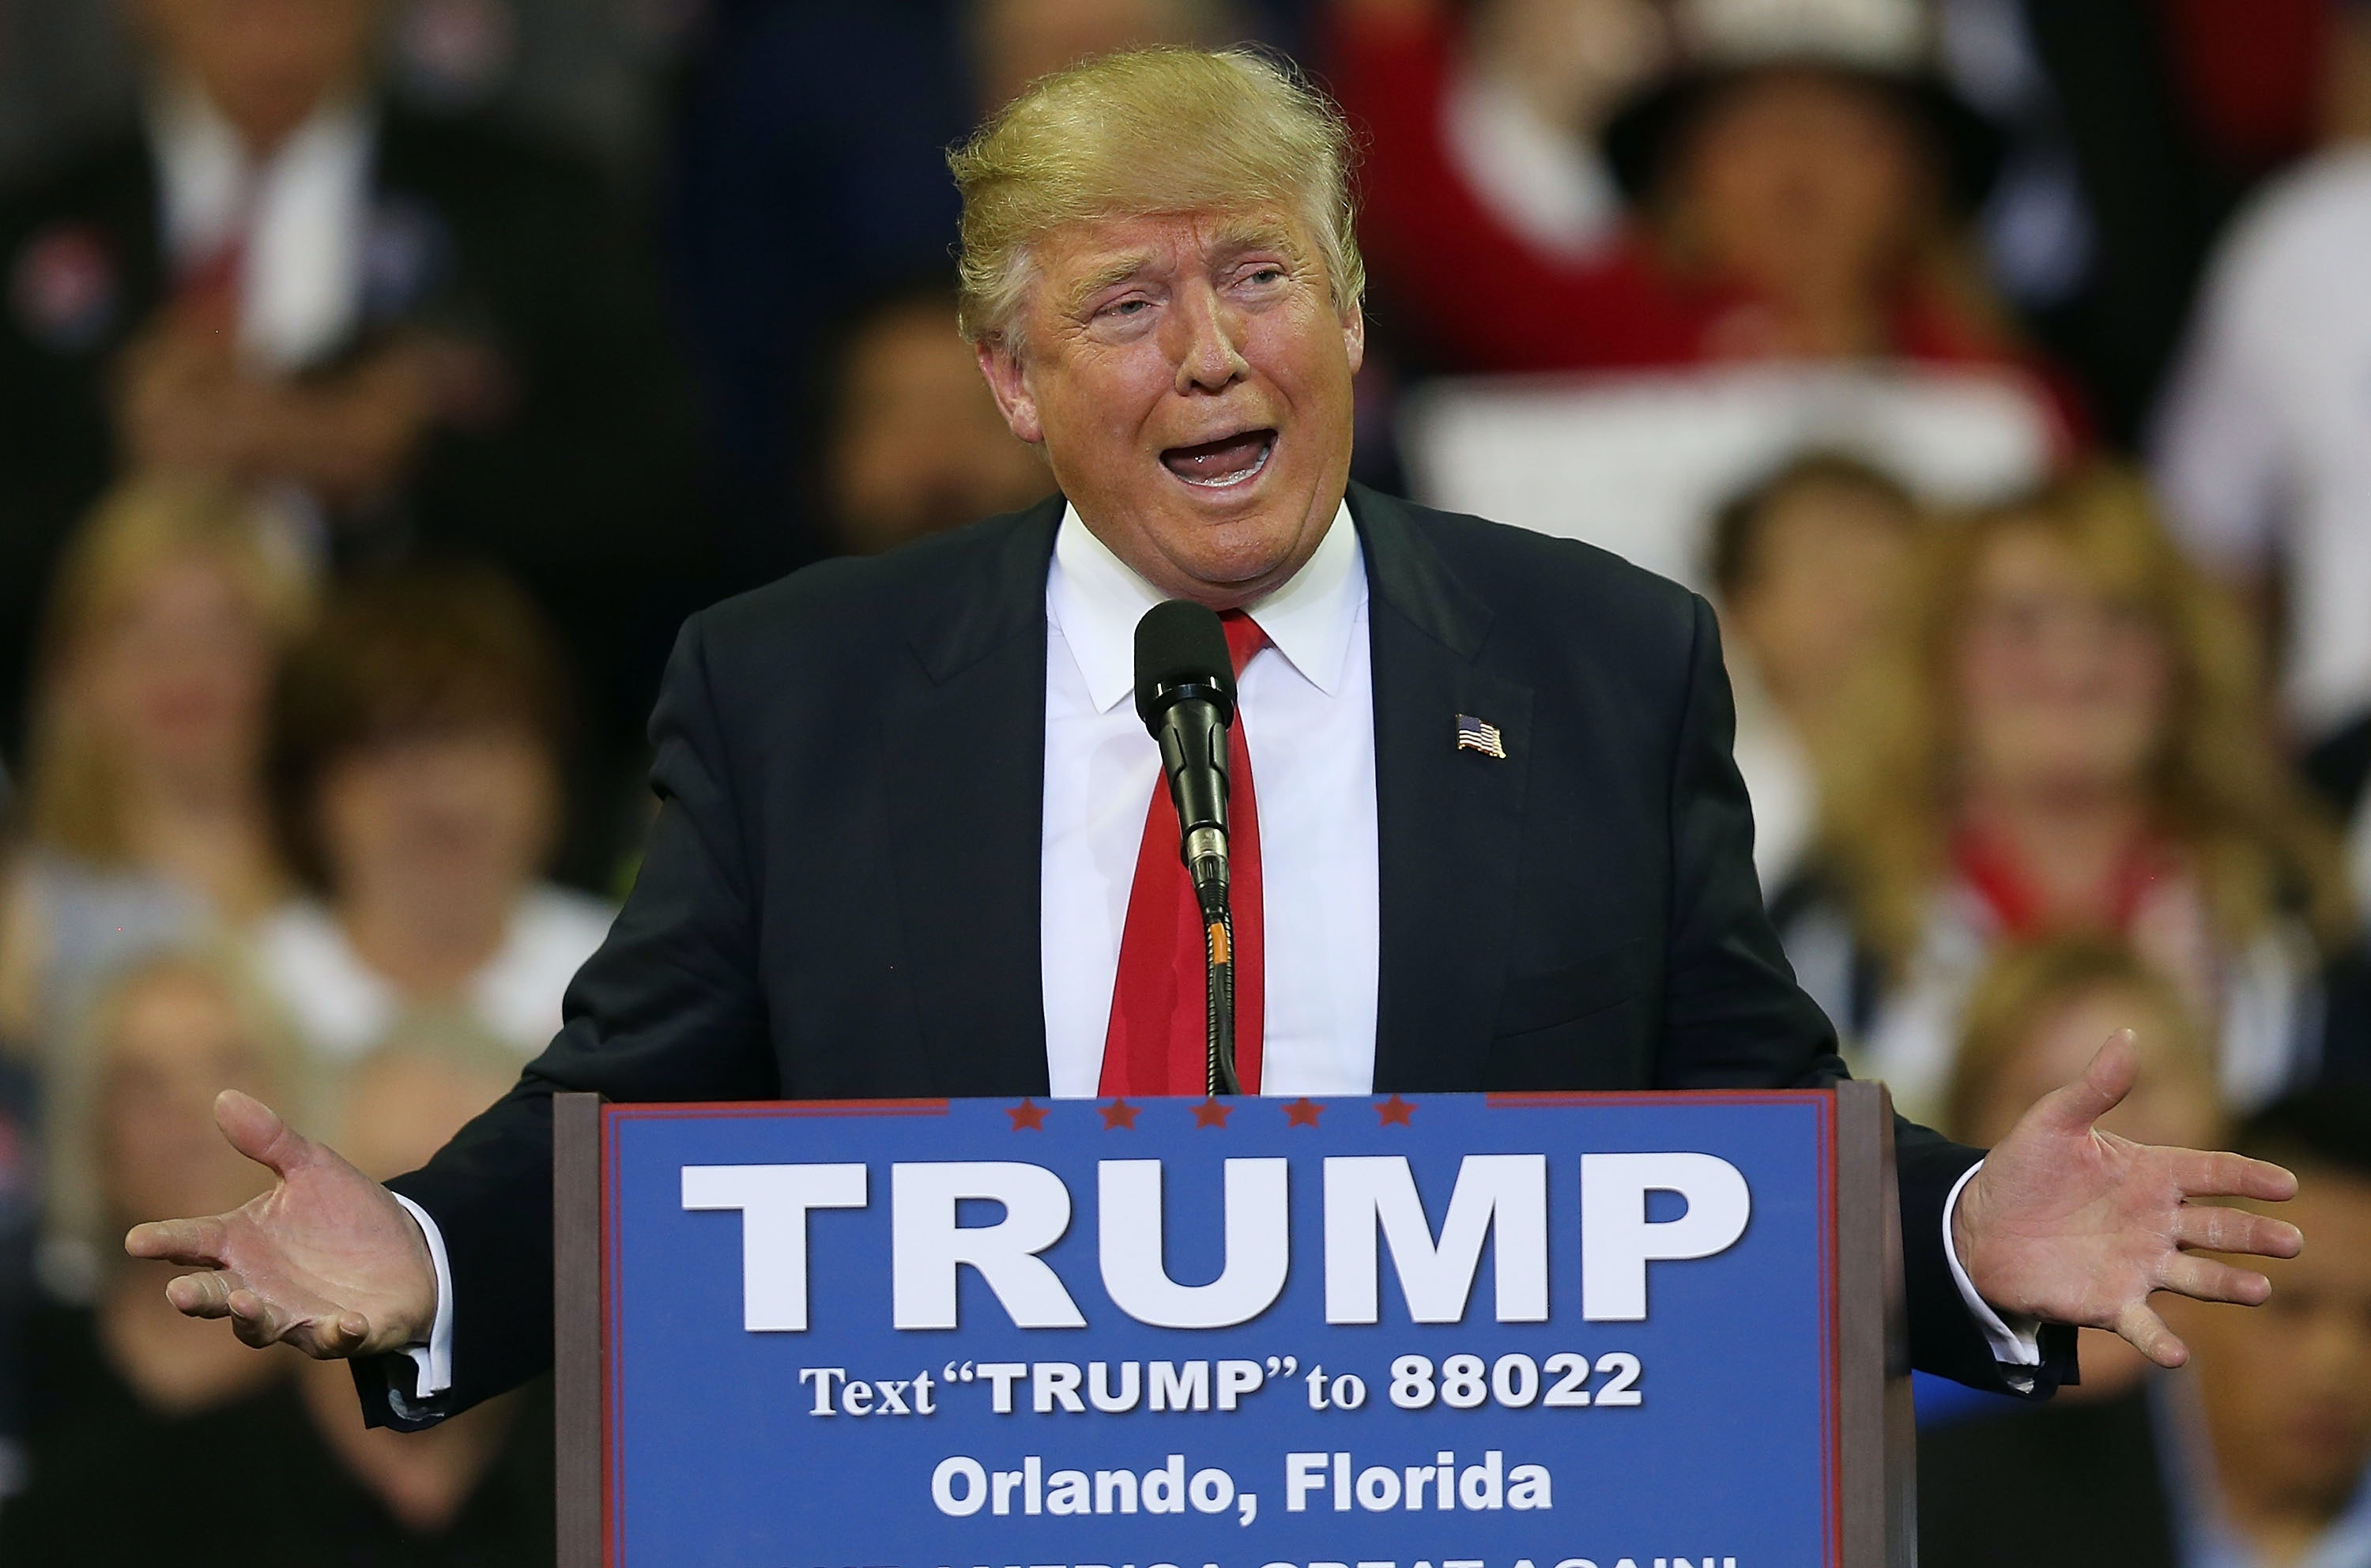 Donald Trump makes supporters swear allegiance to him in Florida